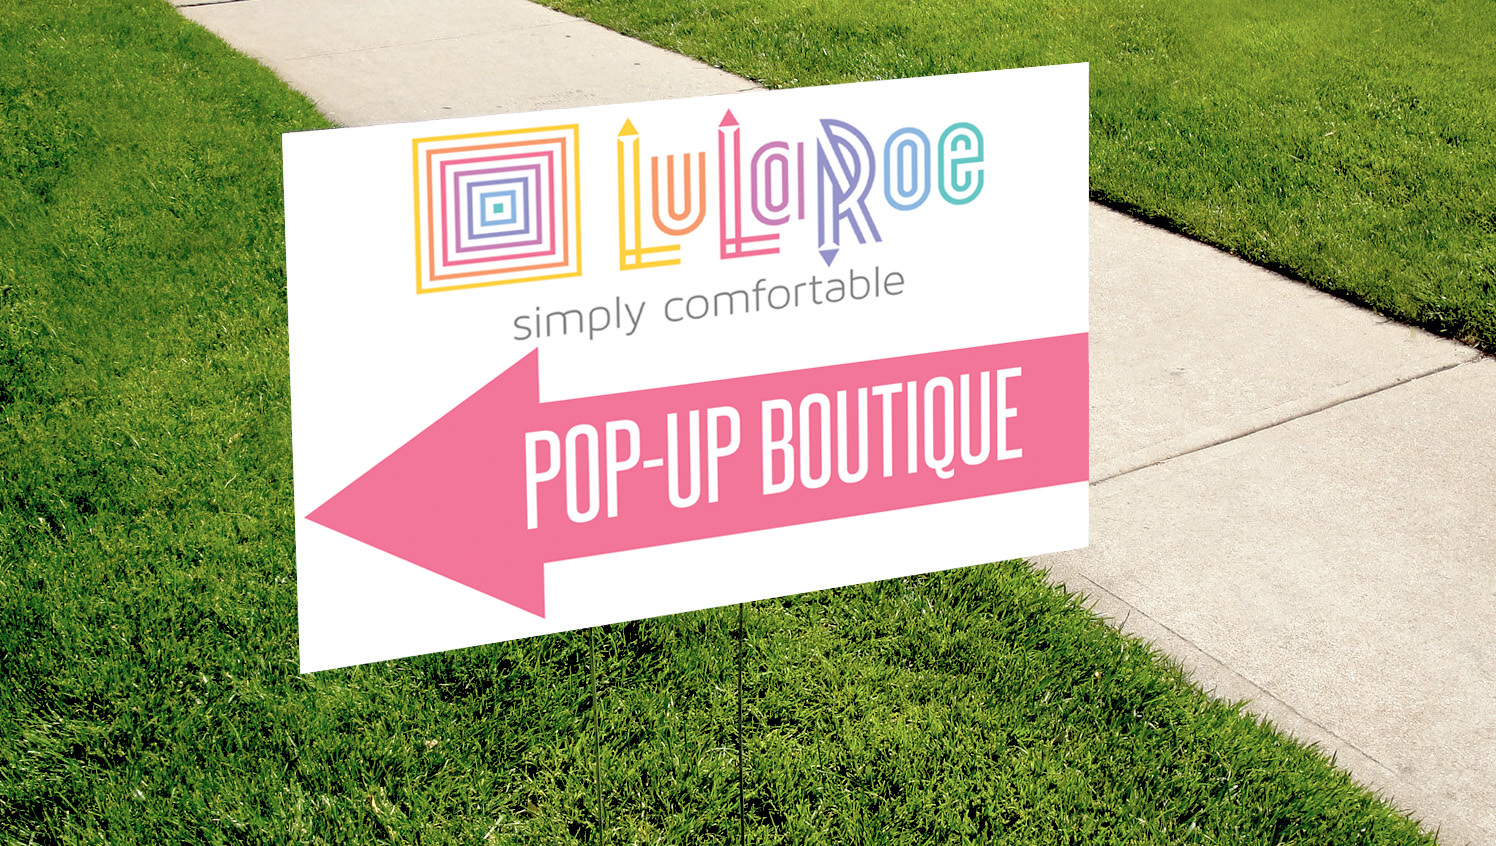 cf75f5788d1f6f Pop-up Boutique Yard Sign - Digital - Pink by okprintables on Zibbet